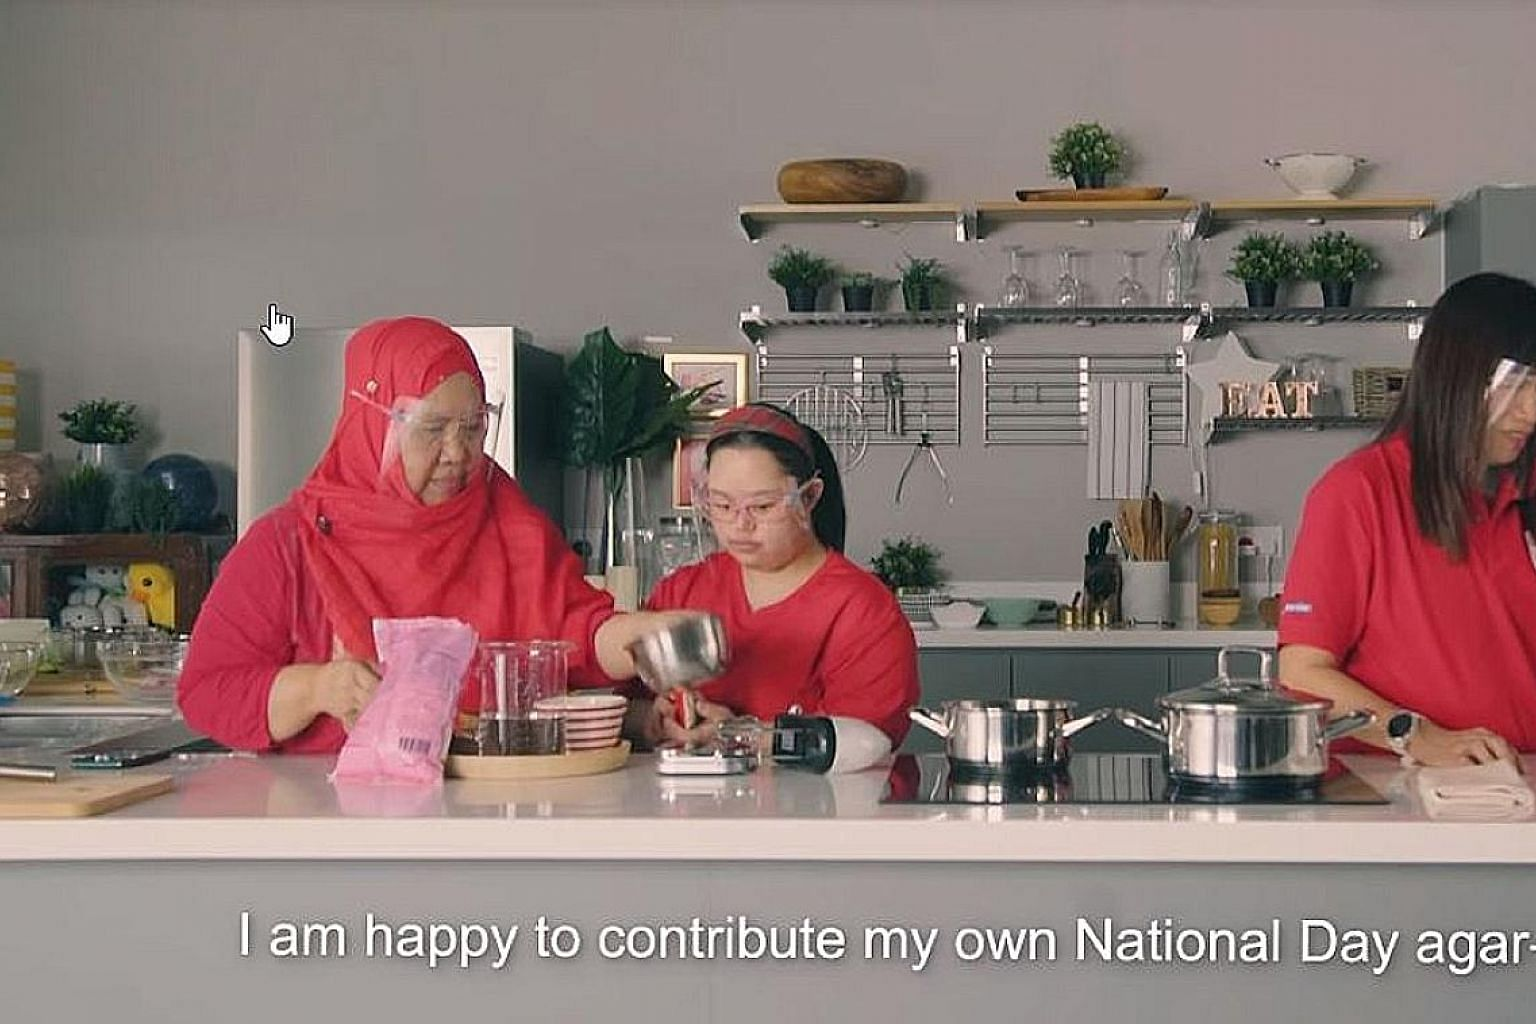 Bakers from Minds, shown in this screengrab, will be making and selling their own National Day-themed cookies. PHOTO: HALIMAH YACOB/FACEBOOK